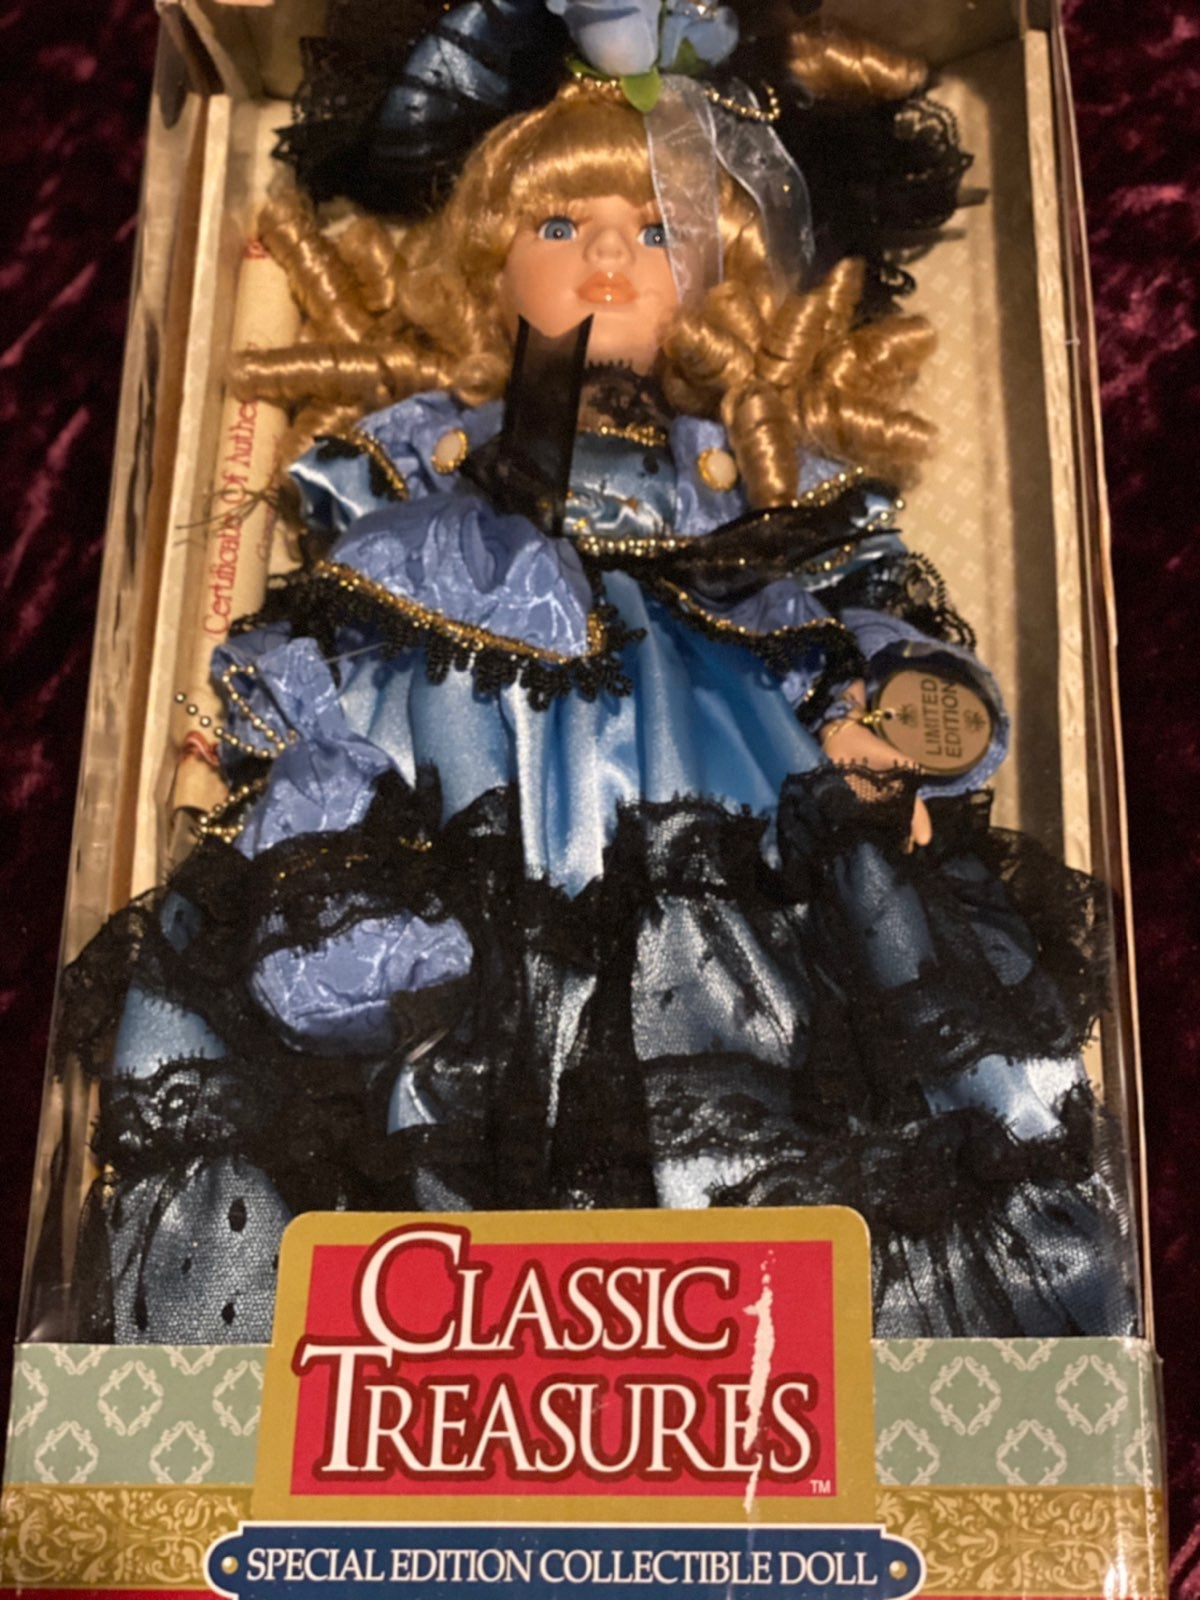 Classic treasures doll